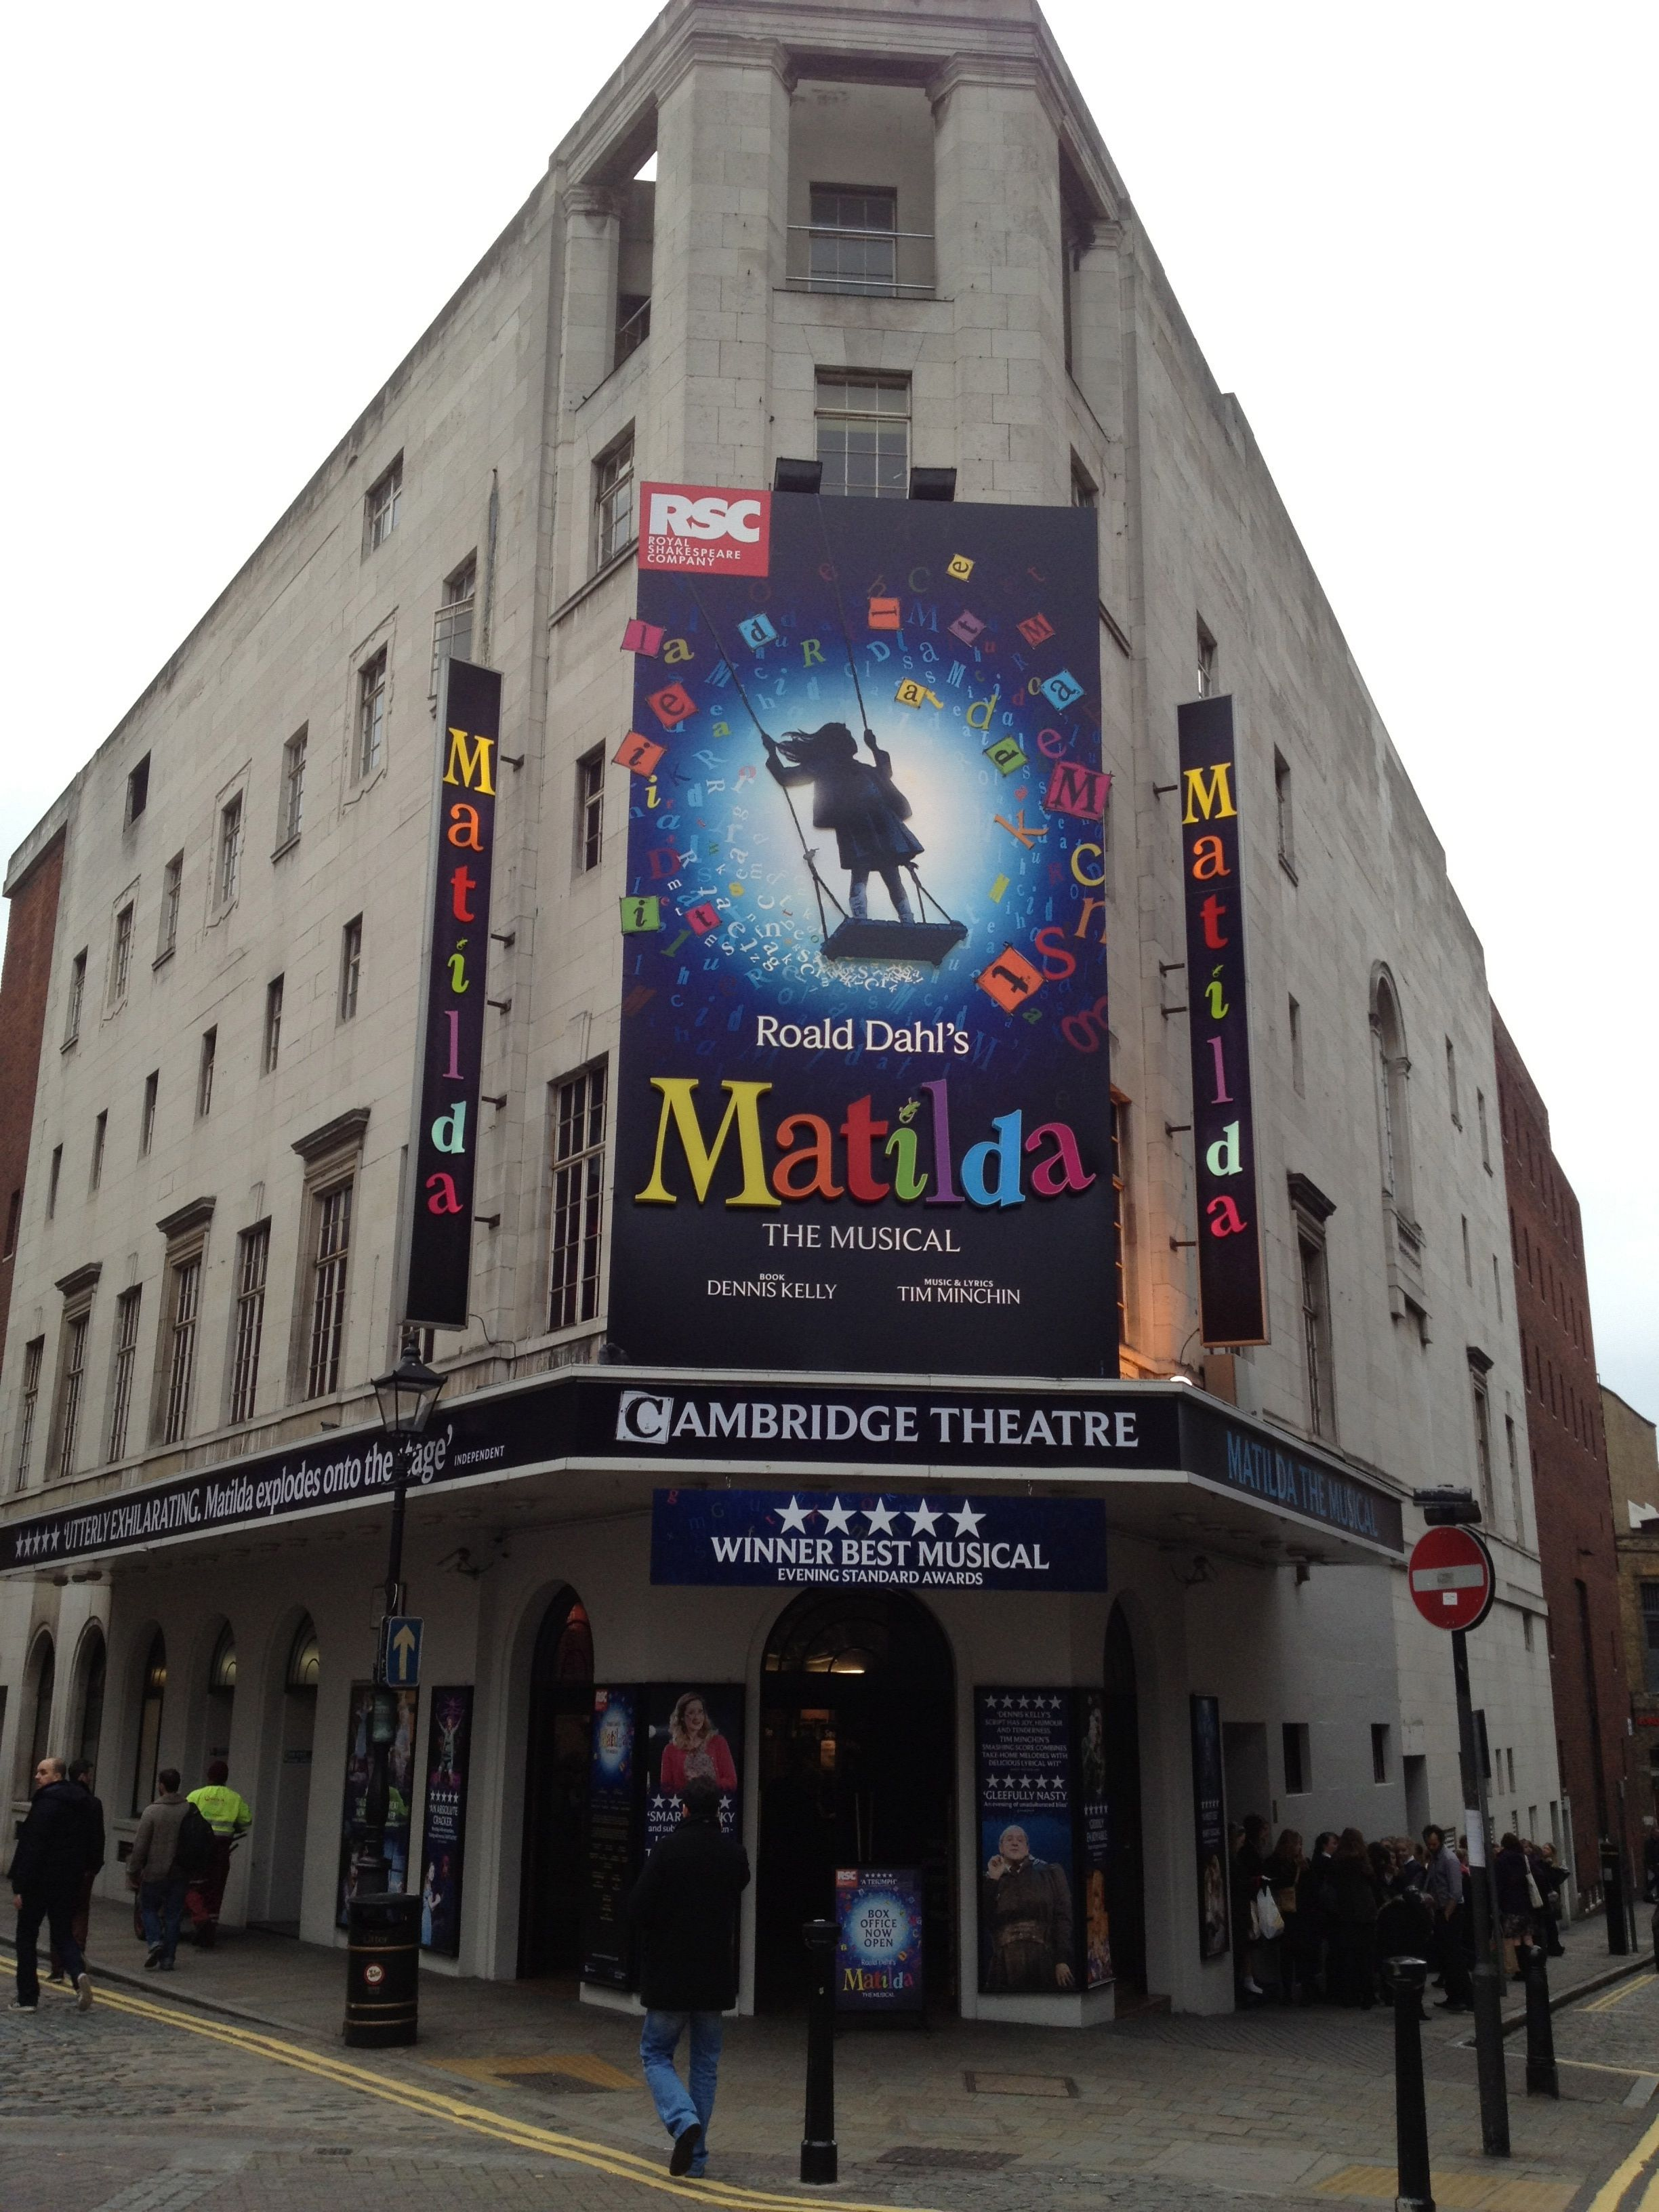 This show was astonishing... So fortunate to see the original cast while I was in London.